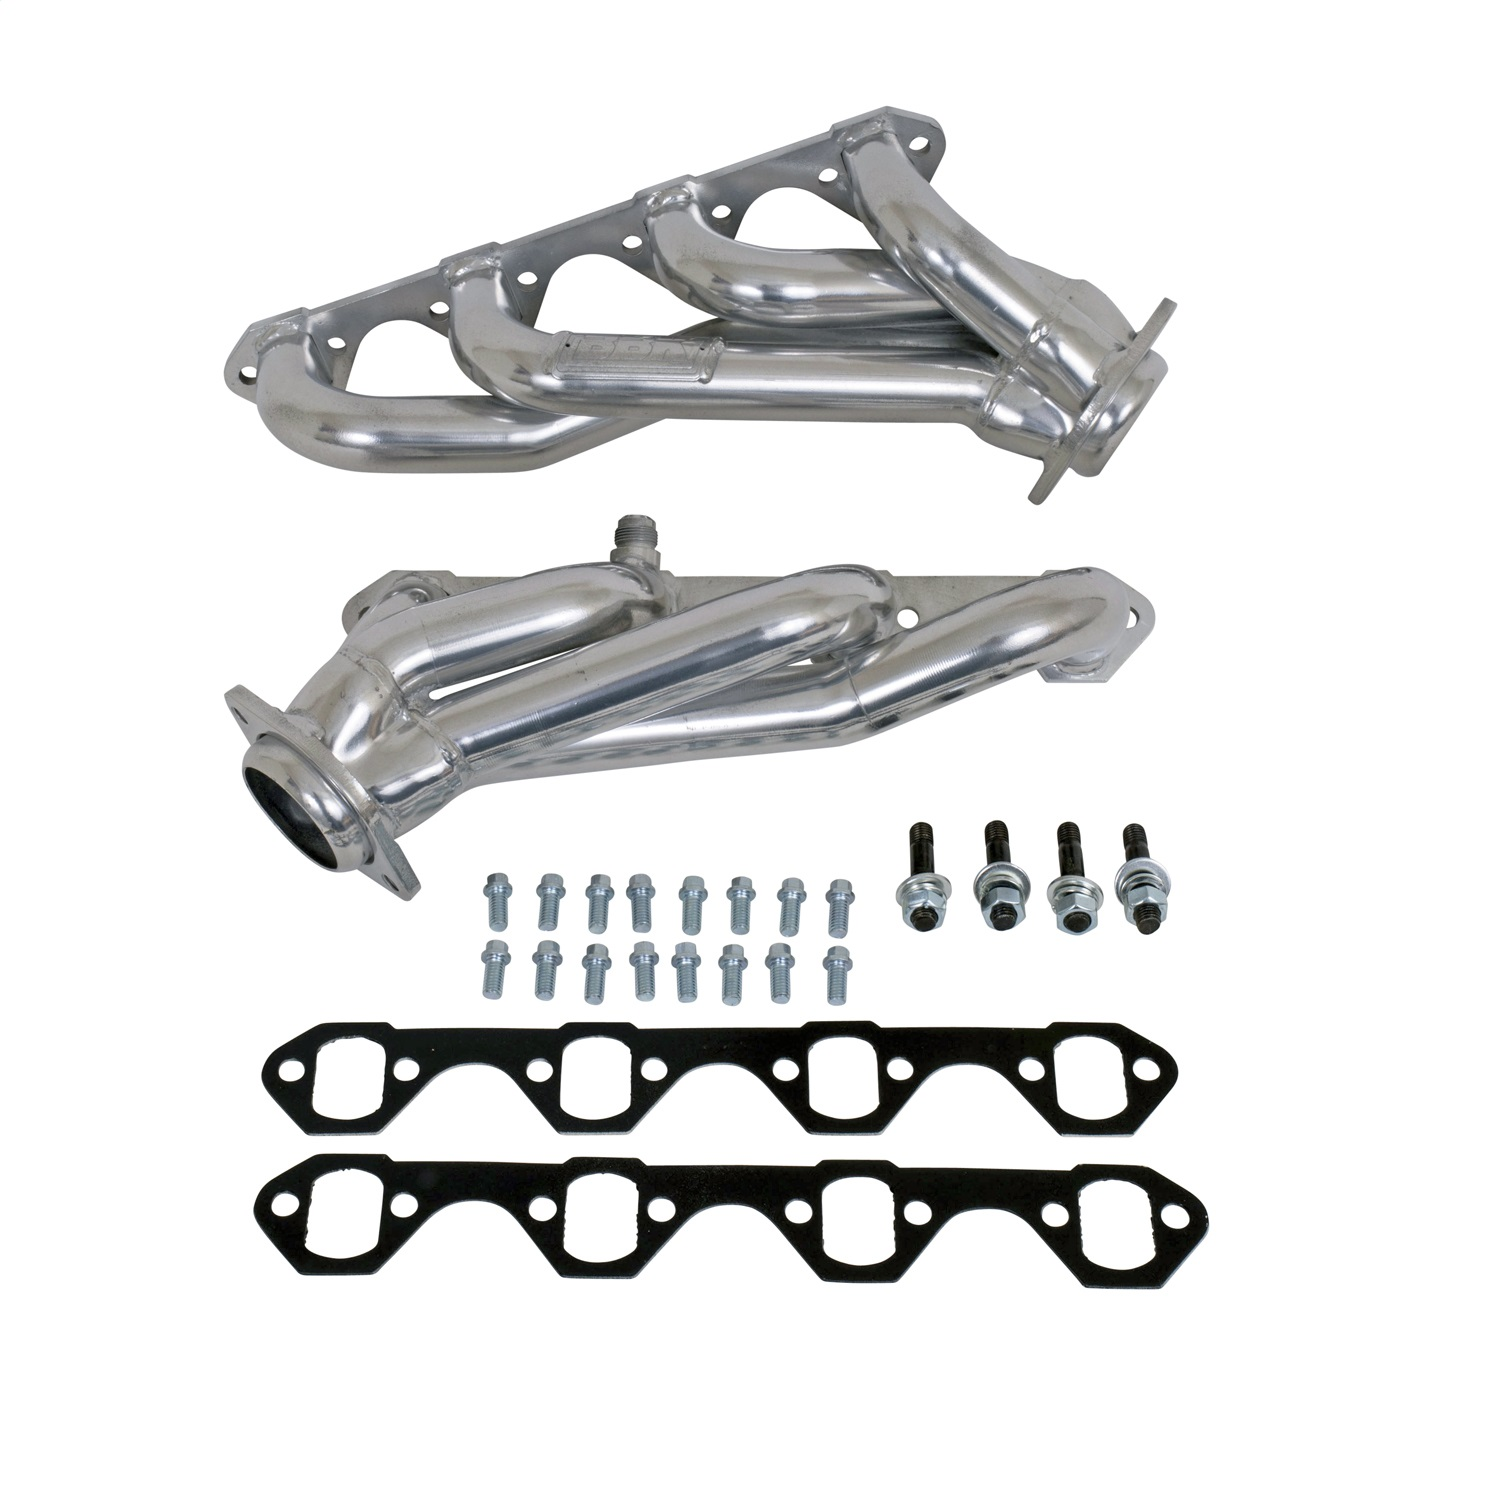 Exhaust Manifold fits 4.6L Ford Mustang GT Passenger Side New 96-04 w// Gaskets